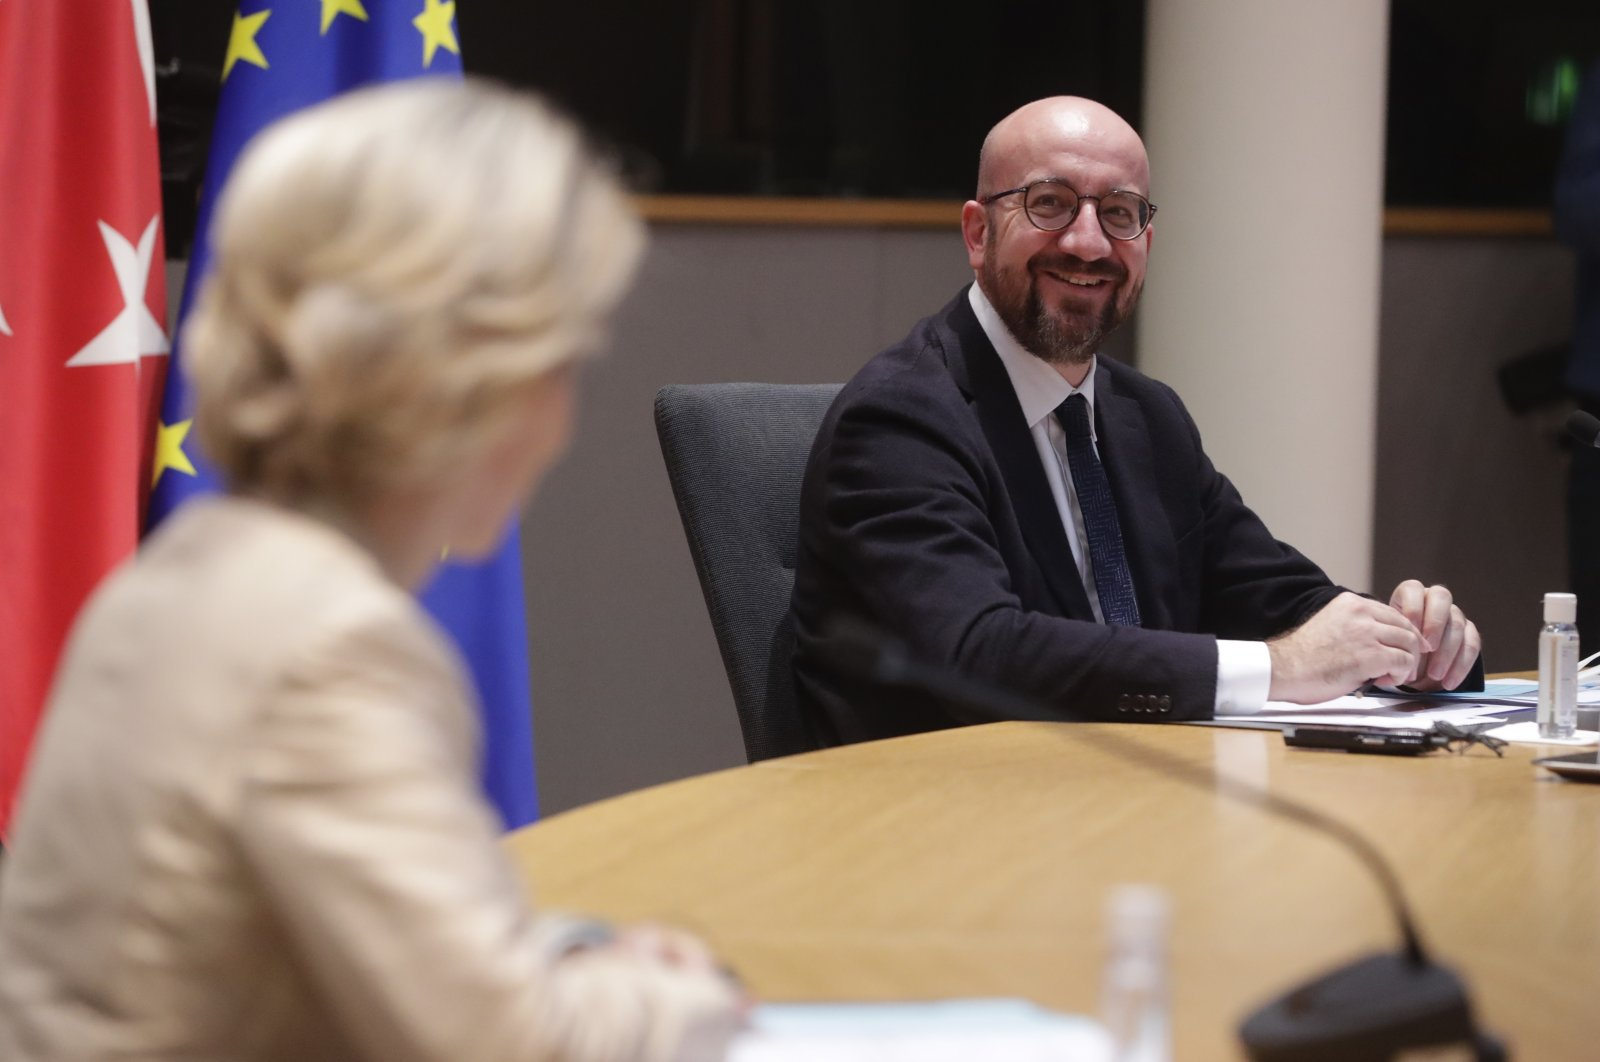 European Commission President Ursula von der Leyen (L) and European Council President Charles Michel participate in a videoconference meeting with President Recep Tayyip Erdoğan at the European Council building in Brussels, March 19, 2021. (Pool via AP)